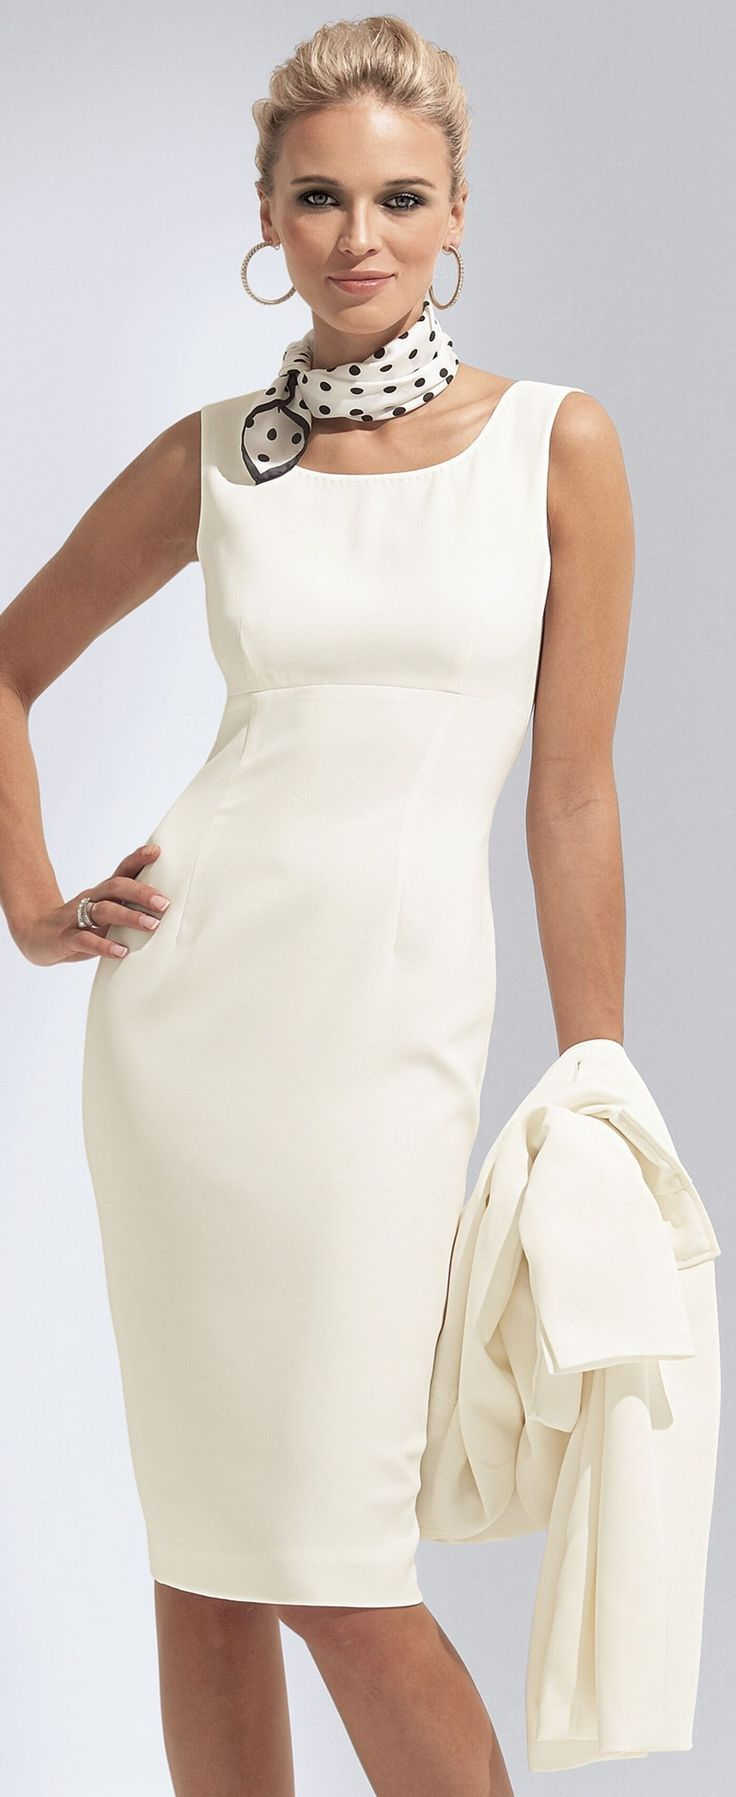 78 Best ideas about White Sheath Dress on Pinterest  Work dresses ...